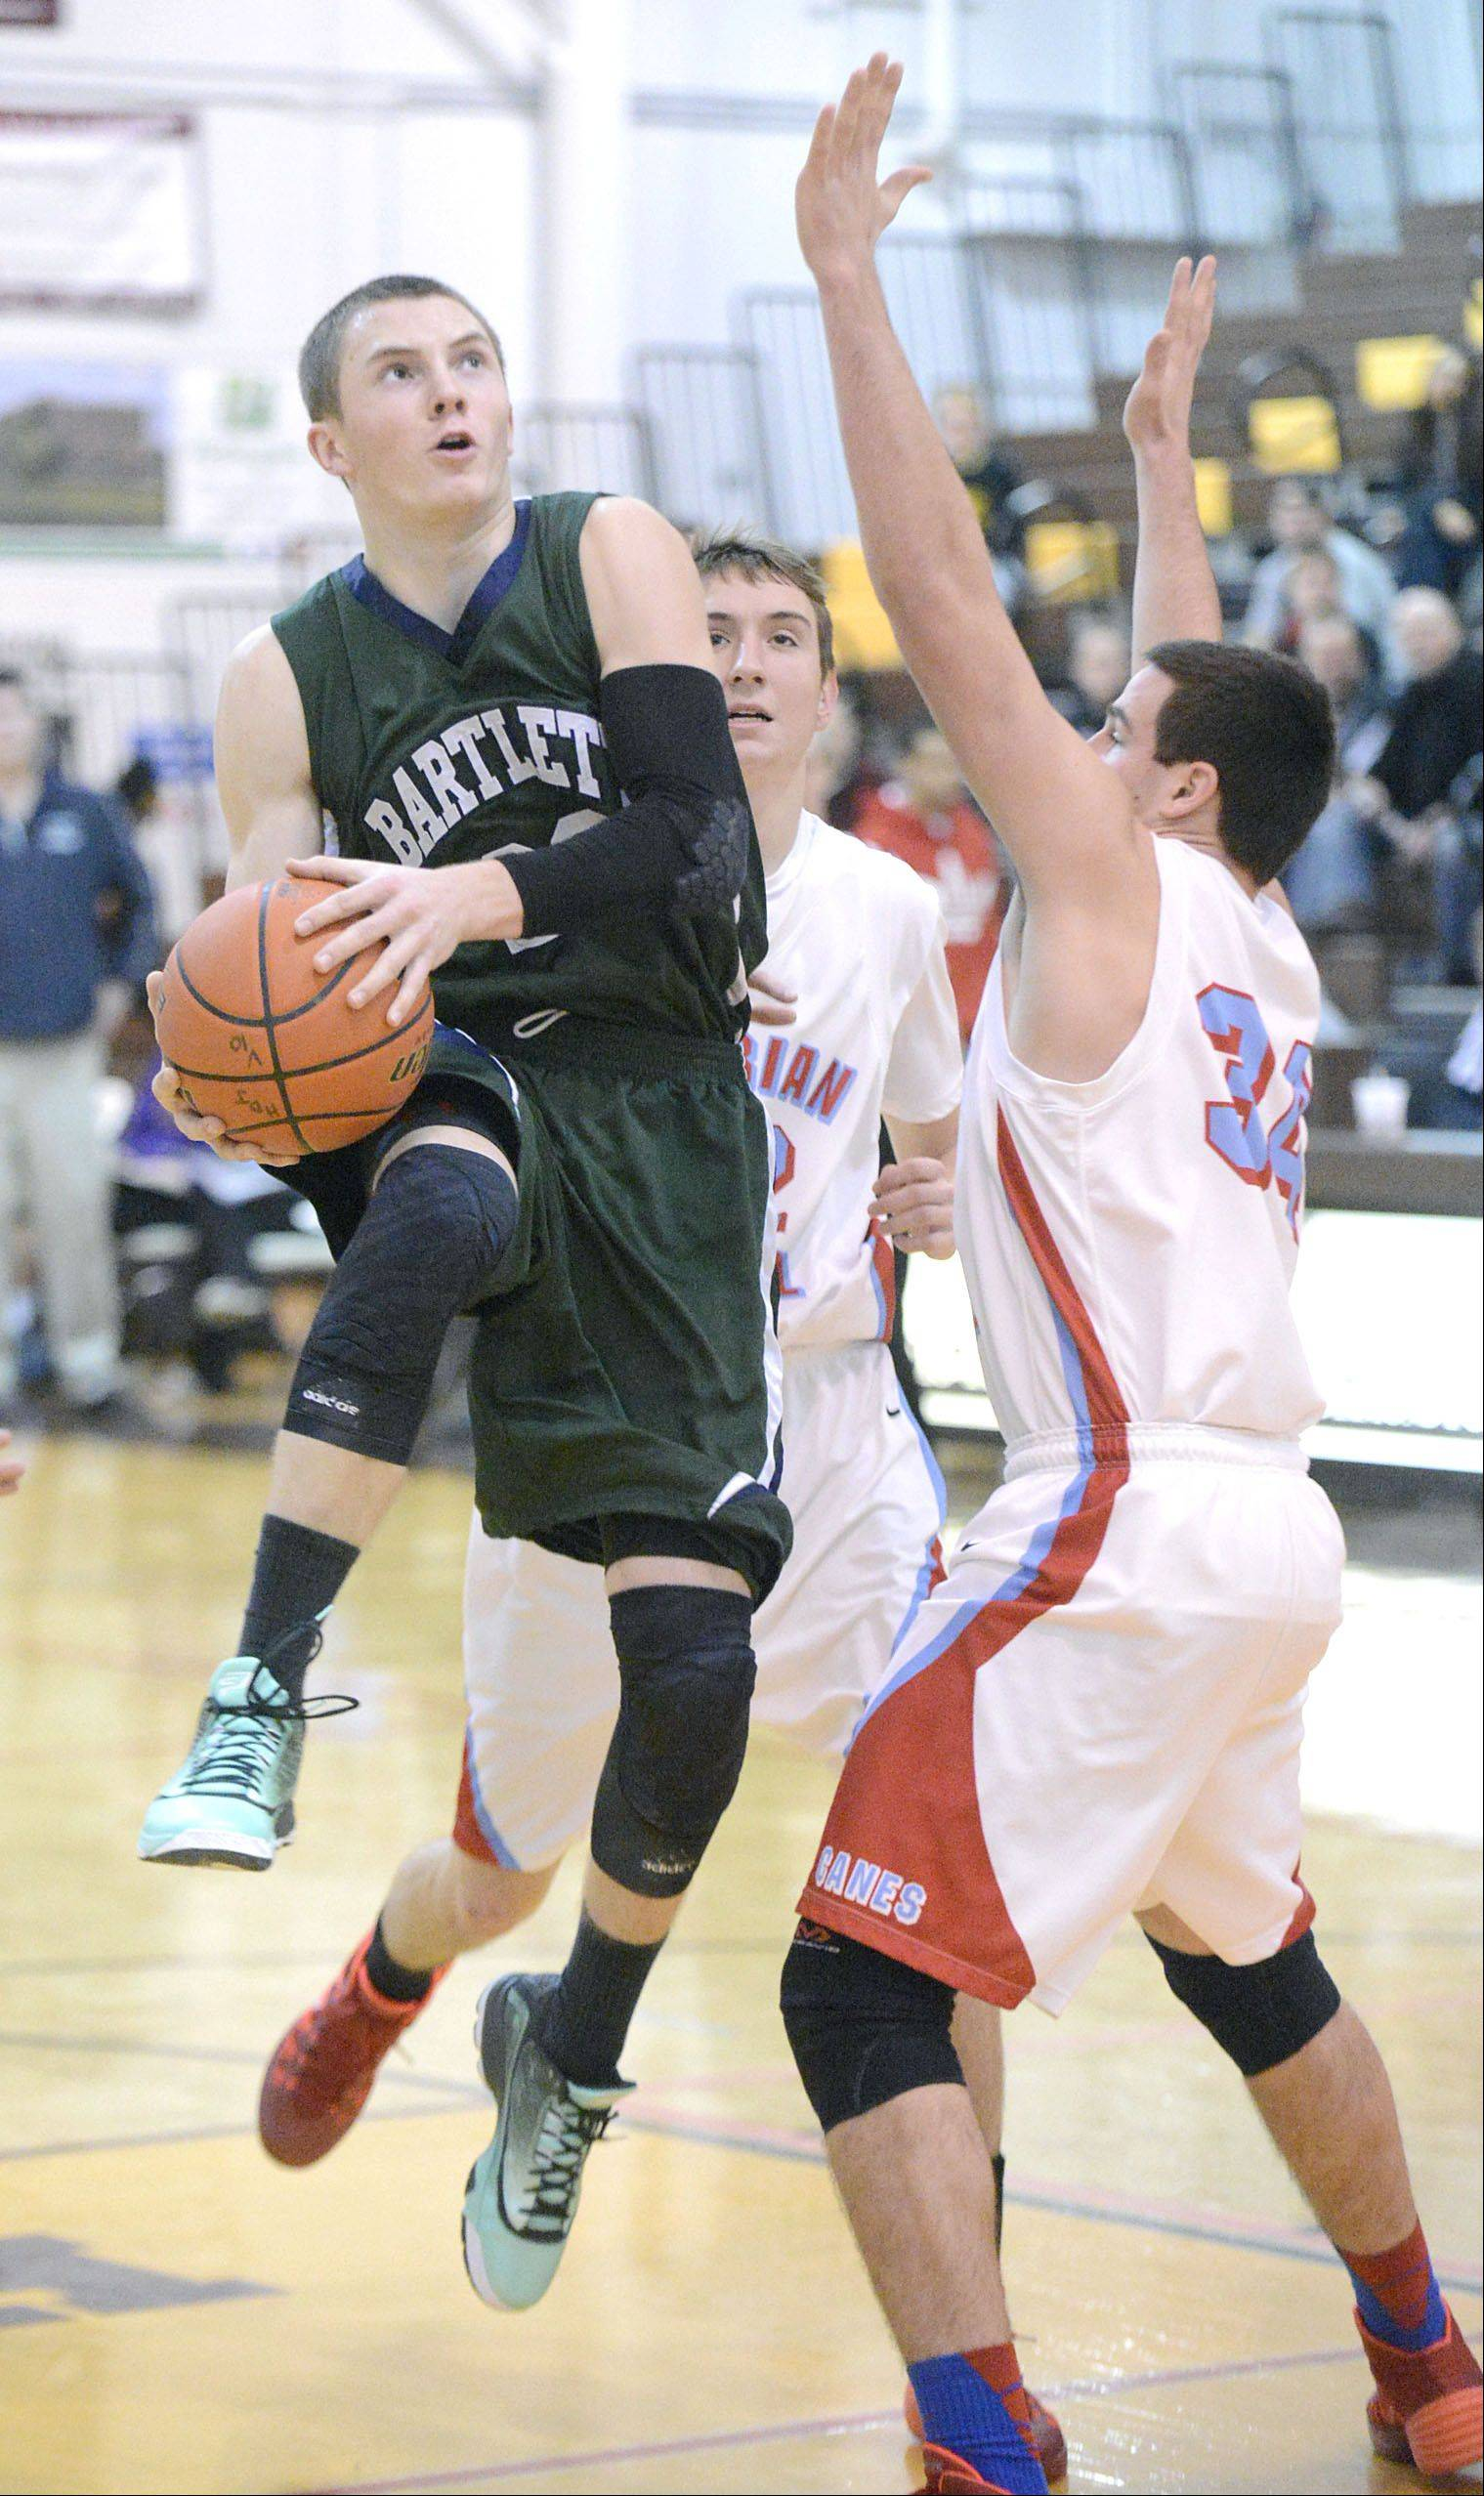 Bartlett's Ryan DiCanio shoots past a block by Marian Central's Matthew Ricchiuto in the first quarter.